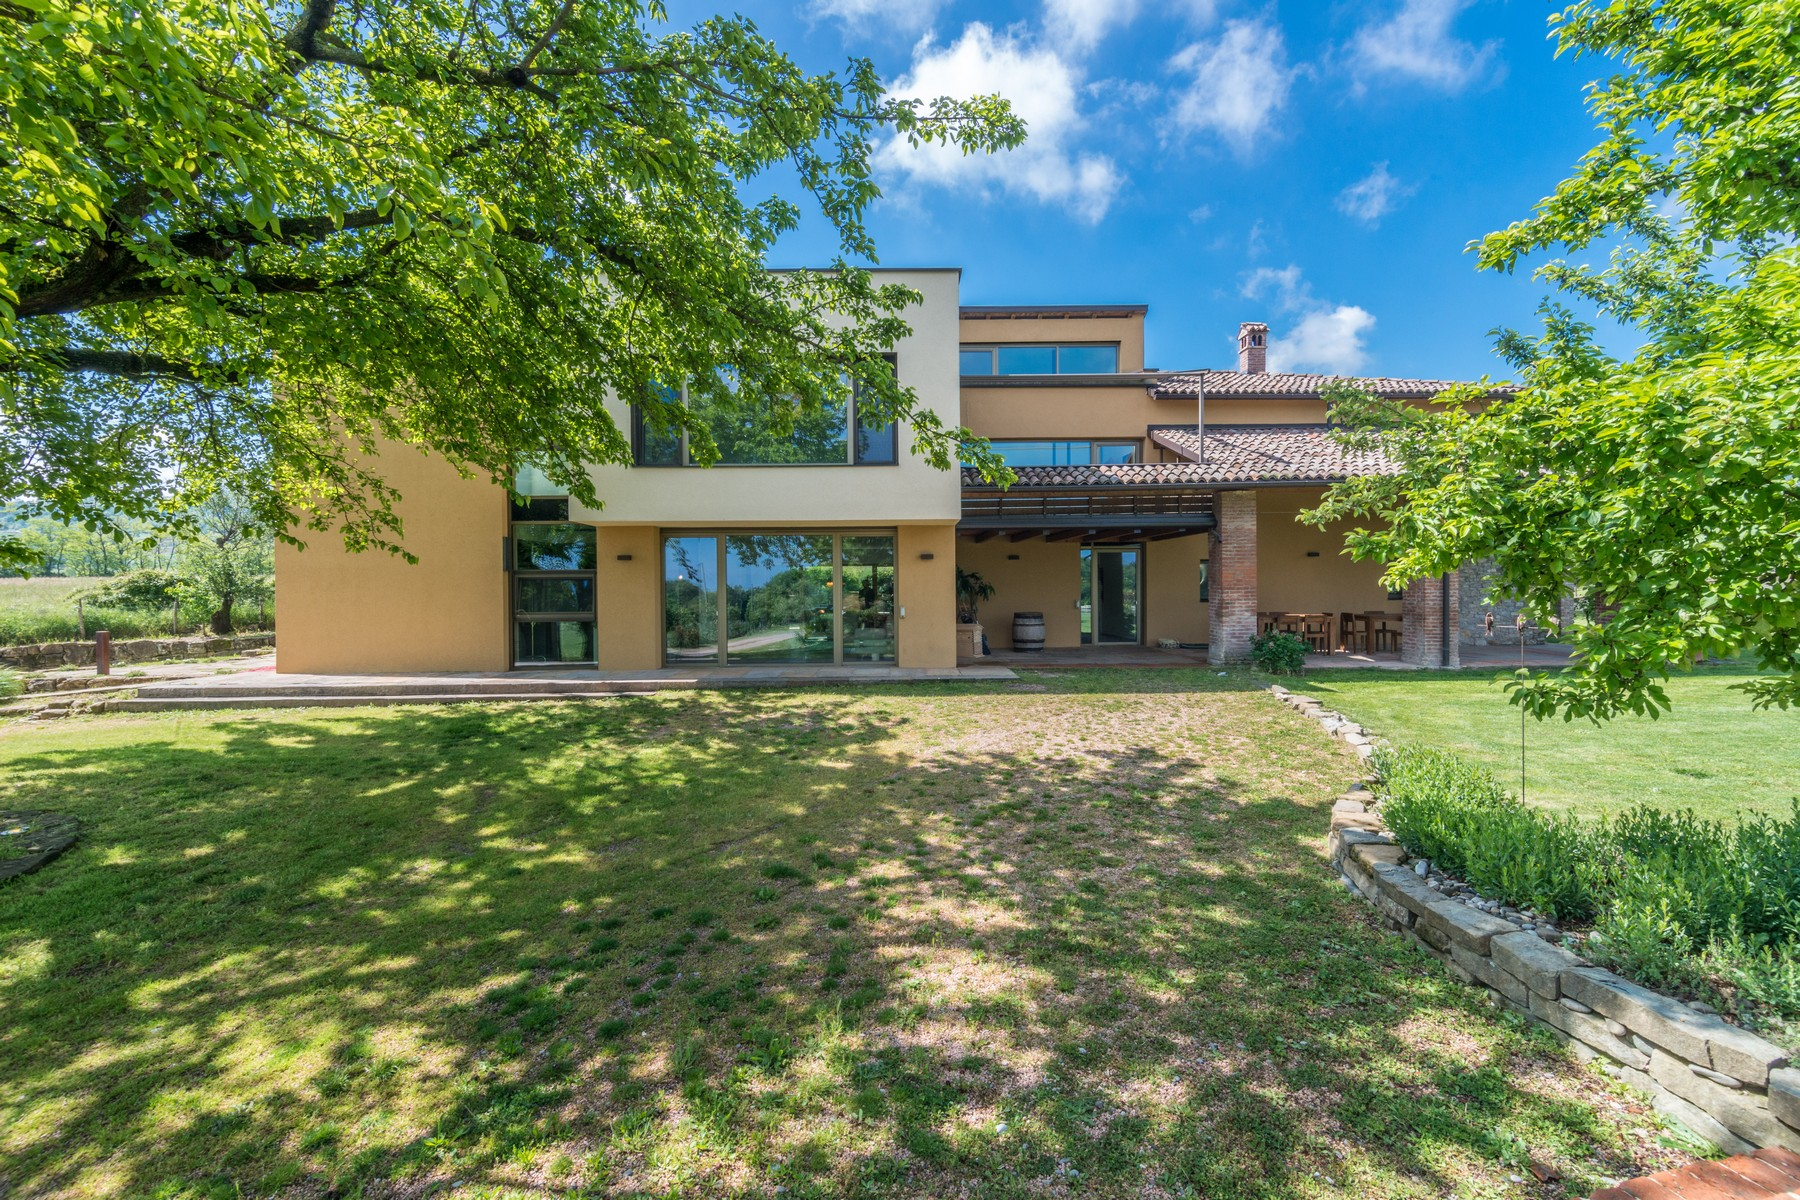 Single Family Home for Sale at Sophisticated passive house immersed in the countryside Strada Provinciale di Agazzano Other Piacenza, Piacenza 29010 Italy